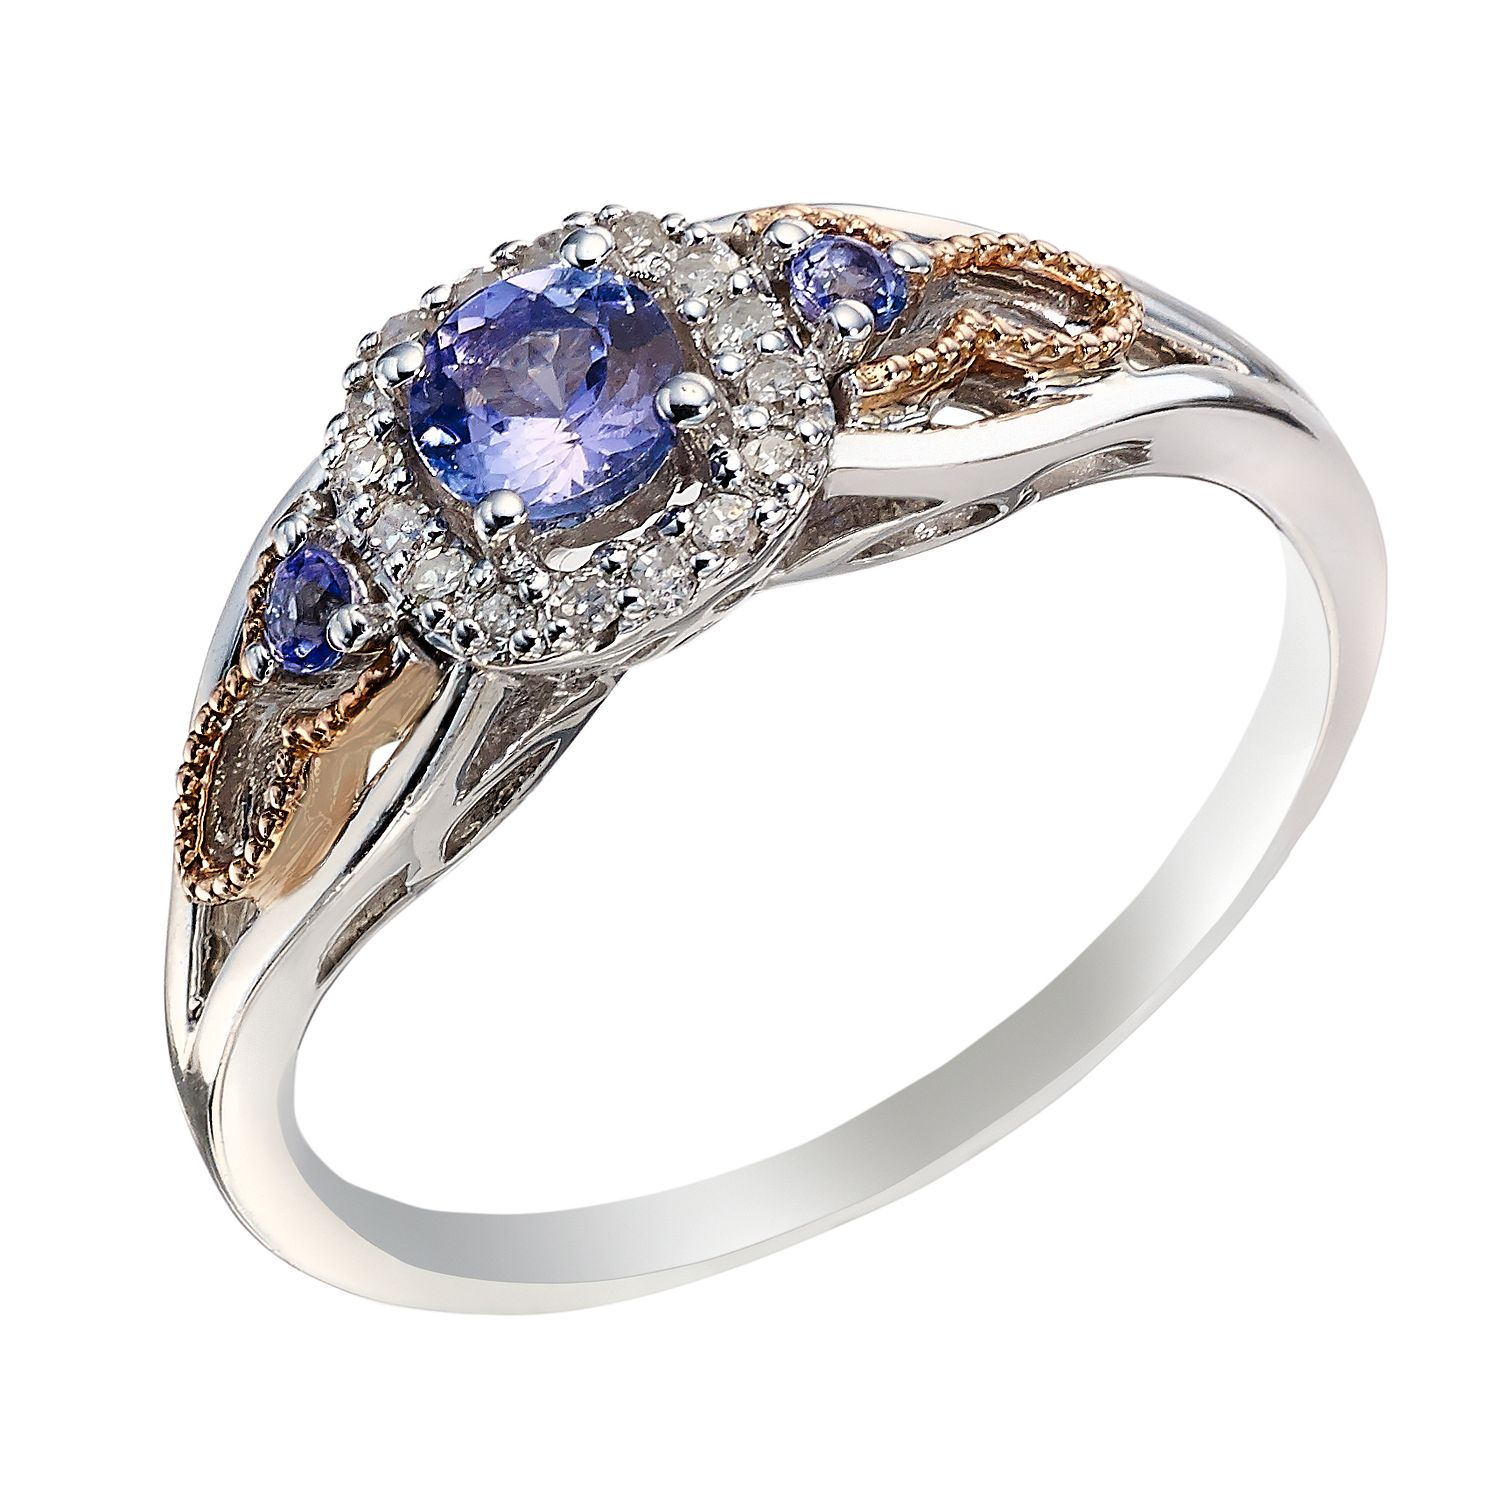 diamonds fmt rings in ed a wid with jewelry soleste hei platinum constrain co id tanzanite m tiffany and ring bands fit